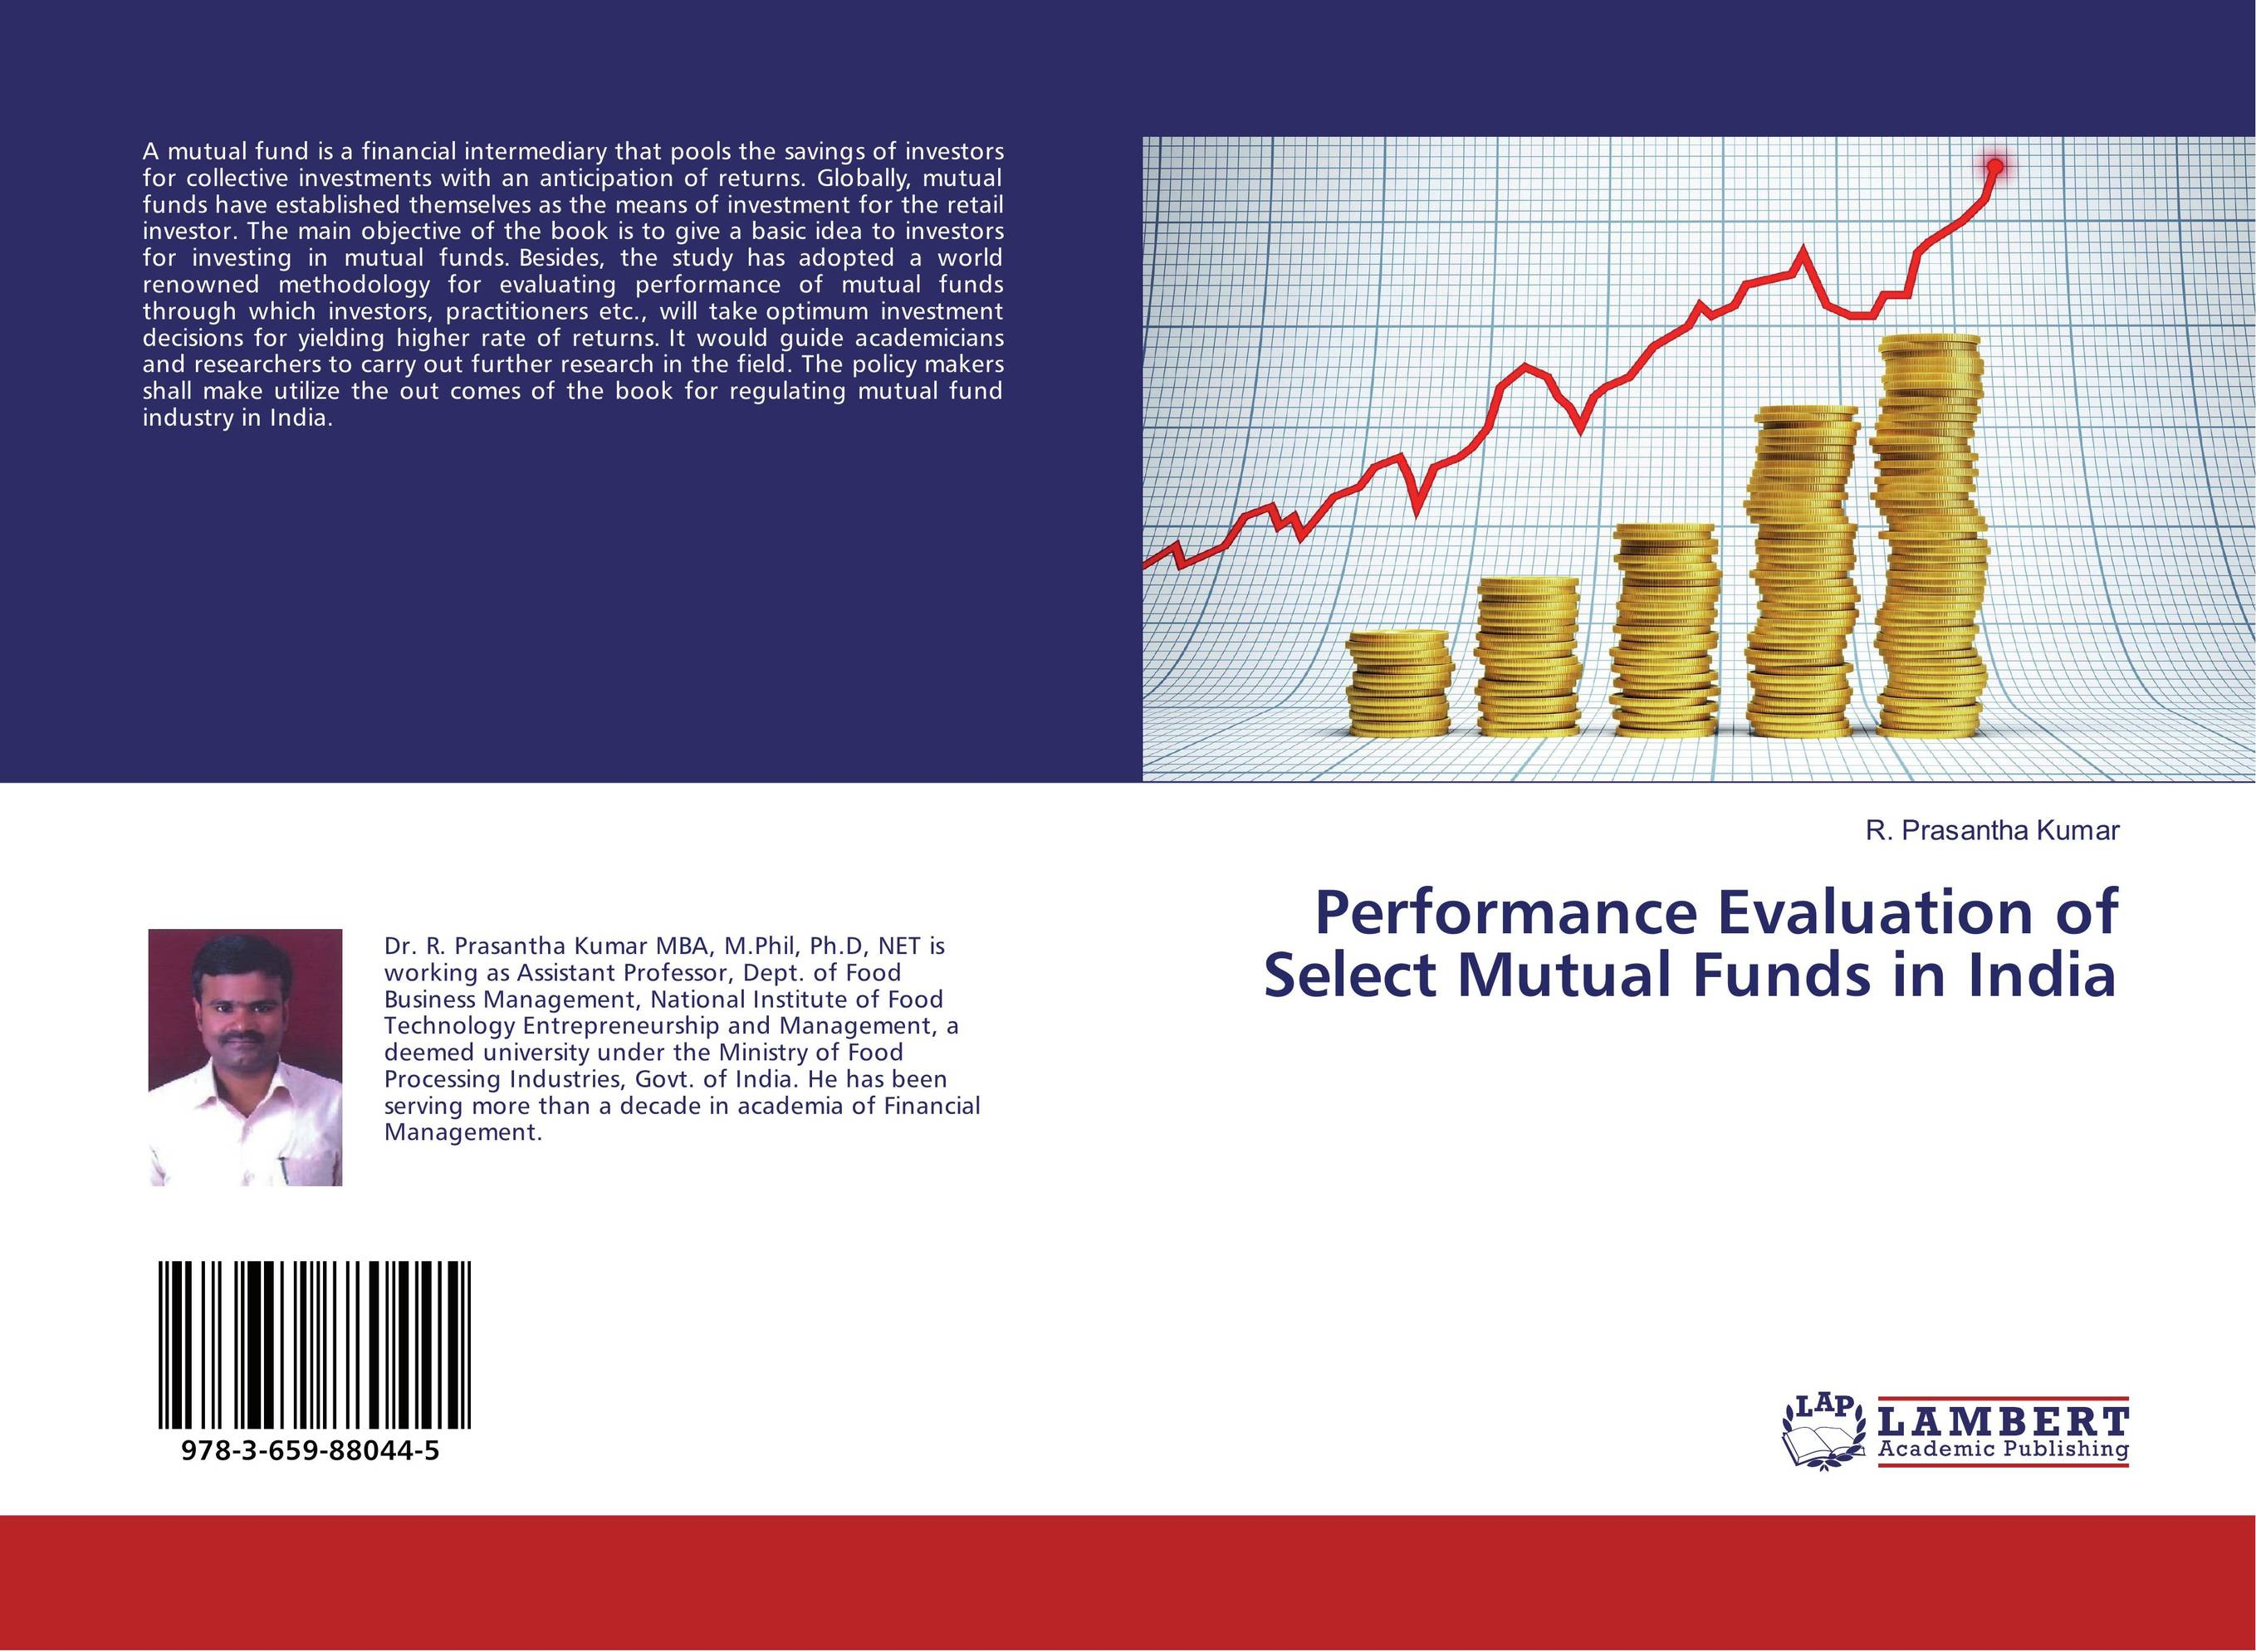 problem identification in mutual funds There are literally thousands of mutual funds that you can choose from to invest in the choice of fund generally narrows based on one's investment preferences and goals, eg, high current yield income, long-term appreciation, or tax-free income.